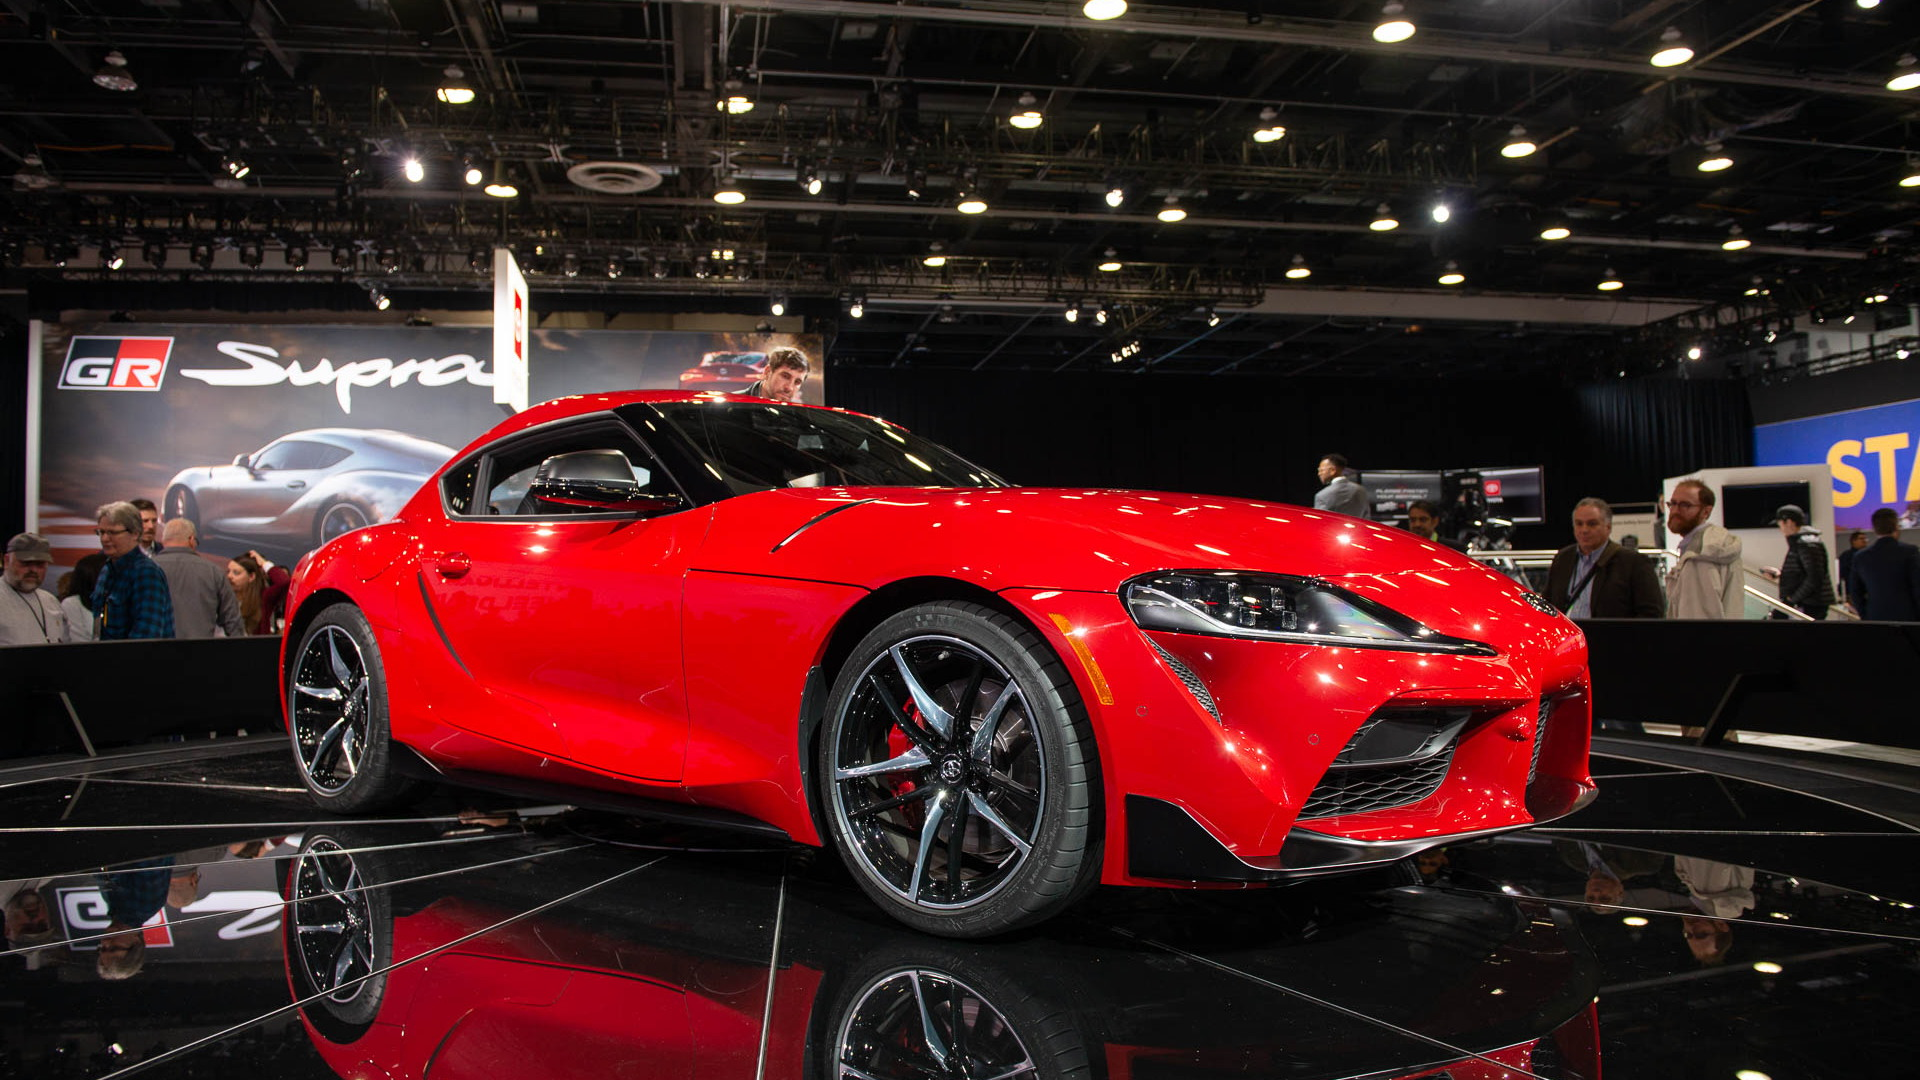 2020 Toyota Supra The Return Of Sports Car Excitement At Toyota